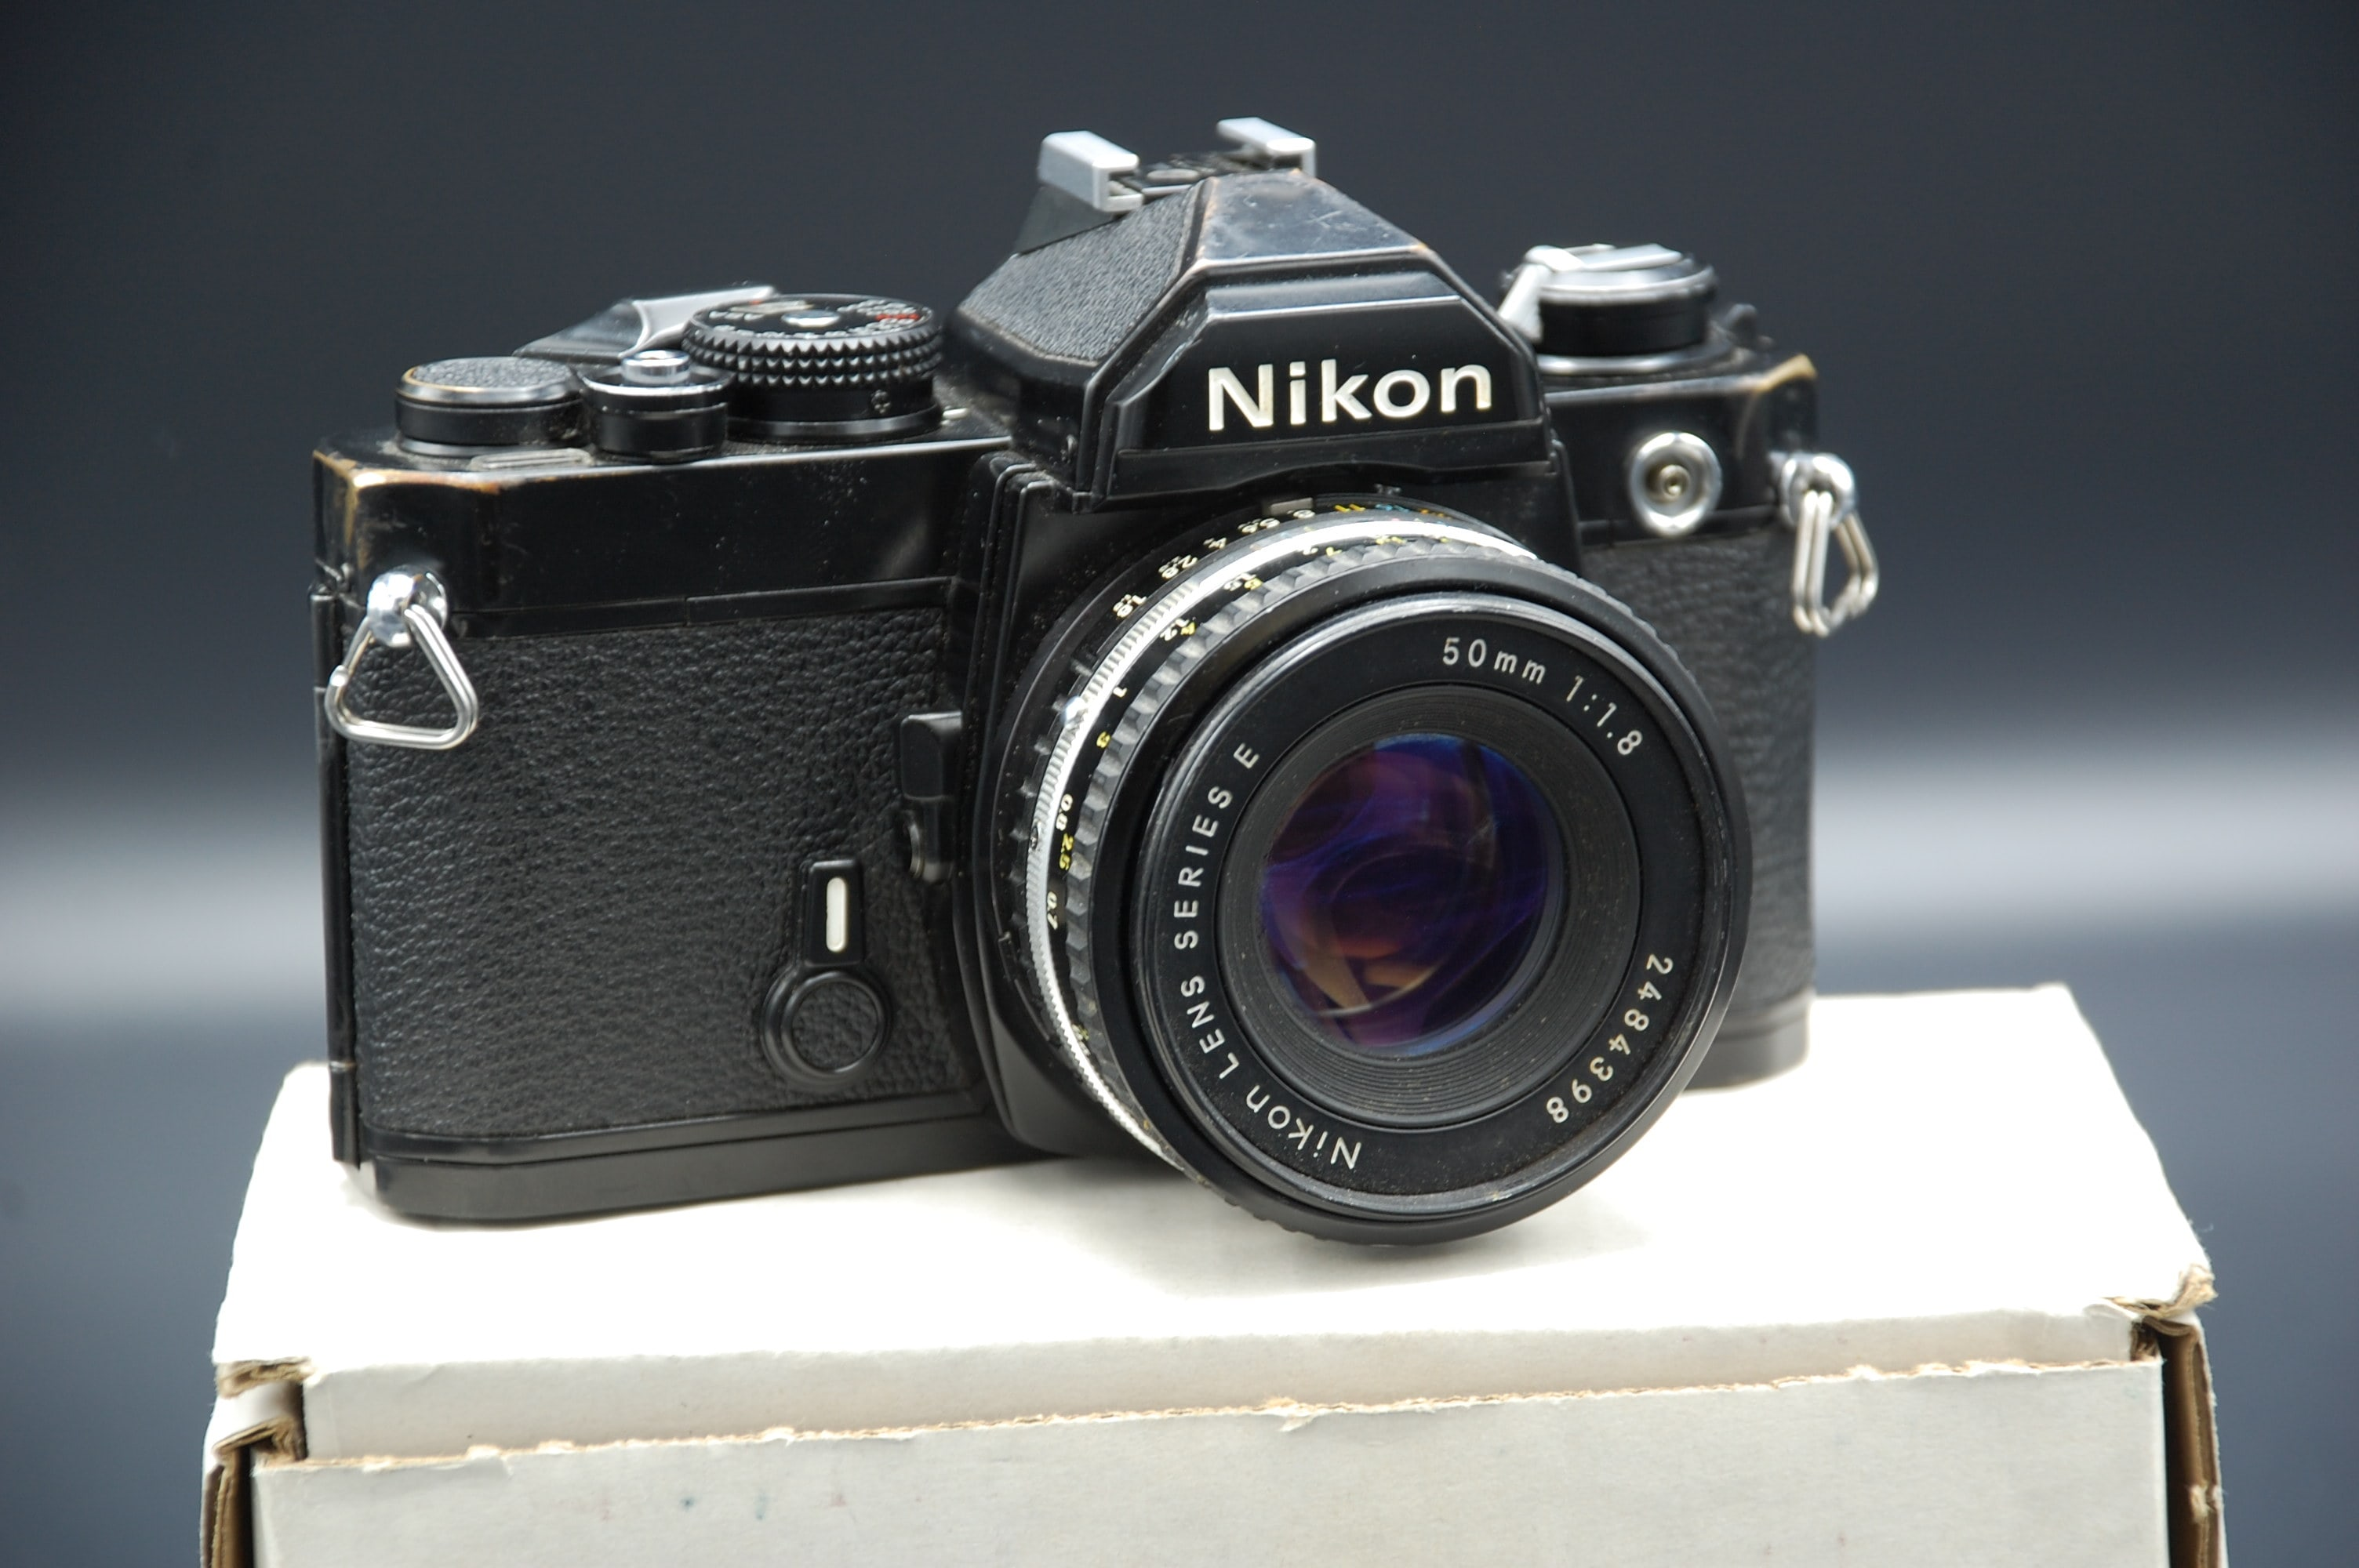 Nikon FM with 50mm Lens -$149.95